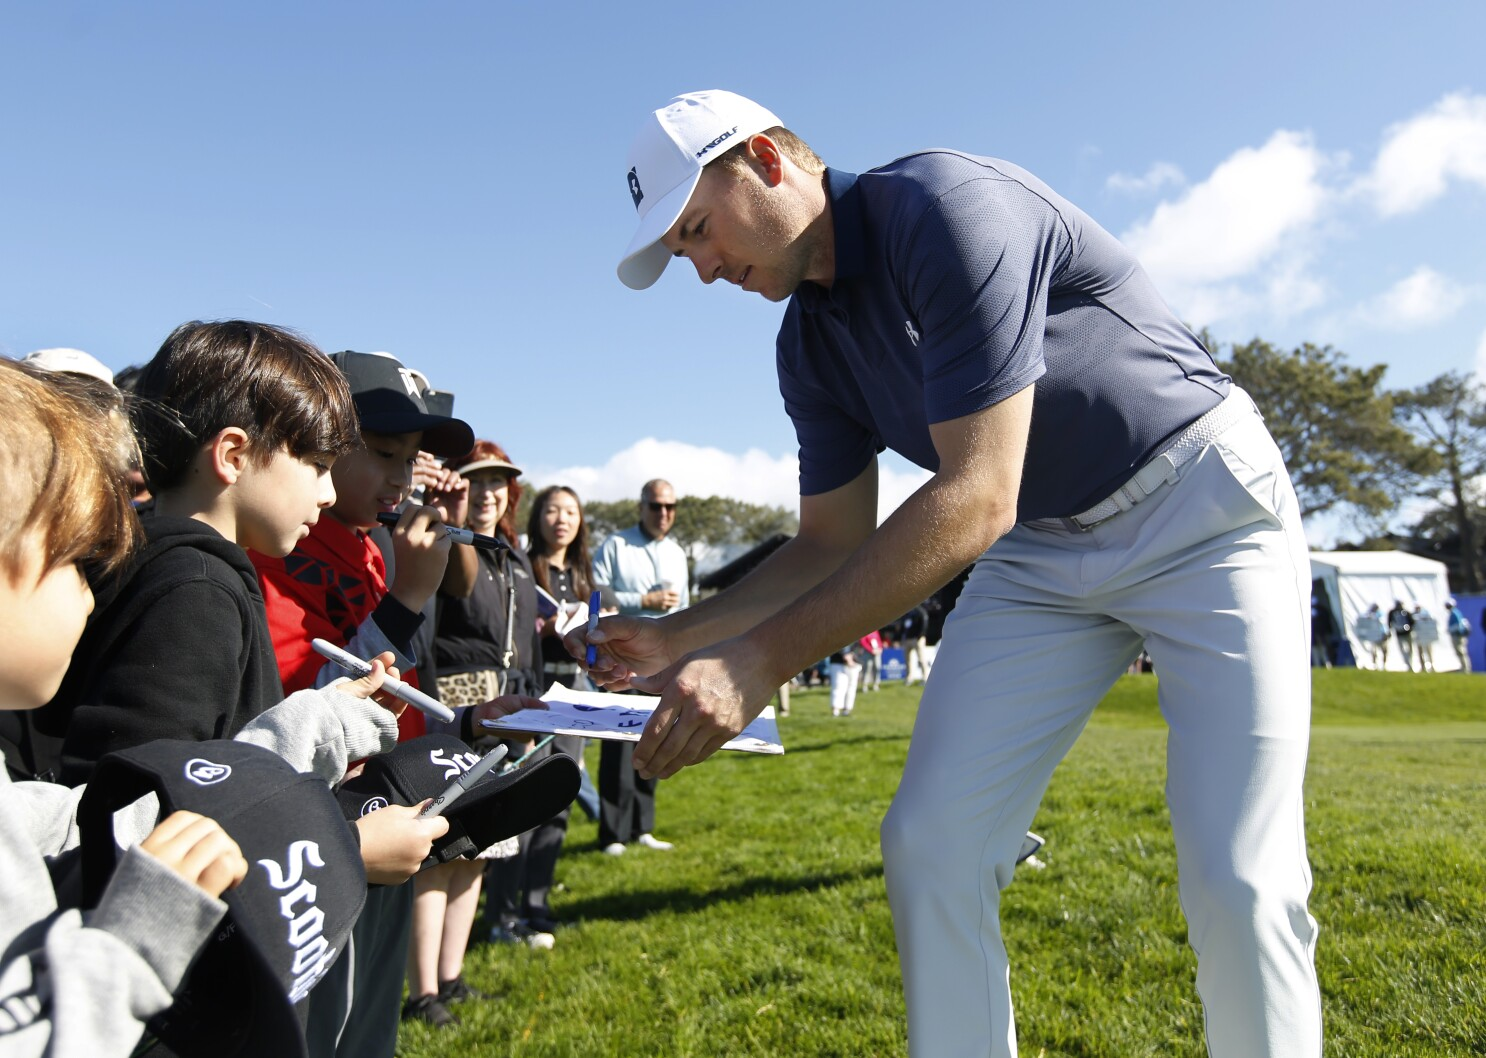 After struggling seasons, Day and Spieth looking for fresh starts in Farmers Open